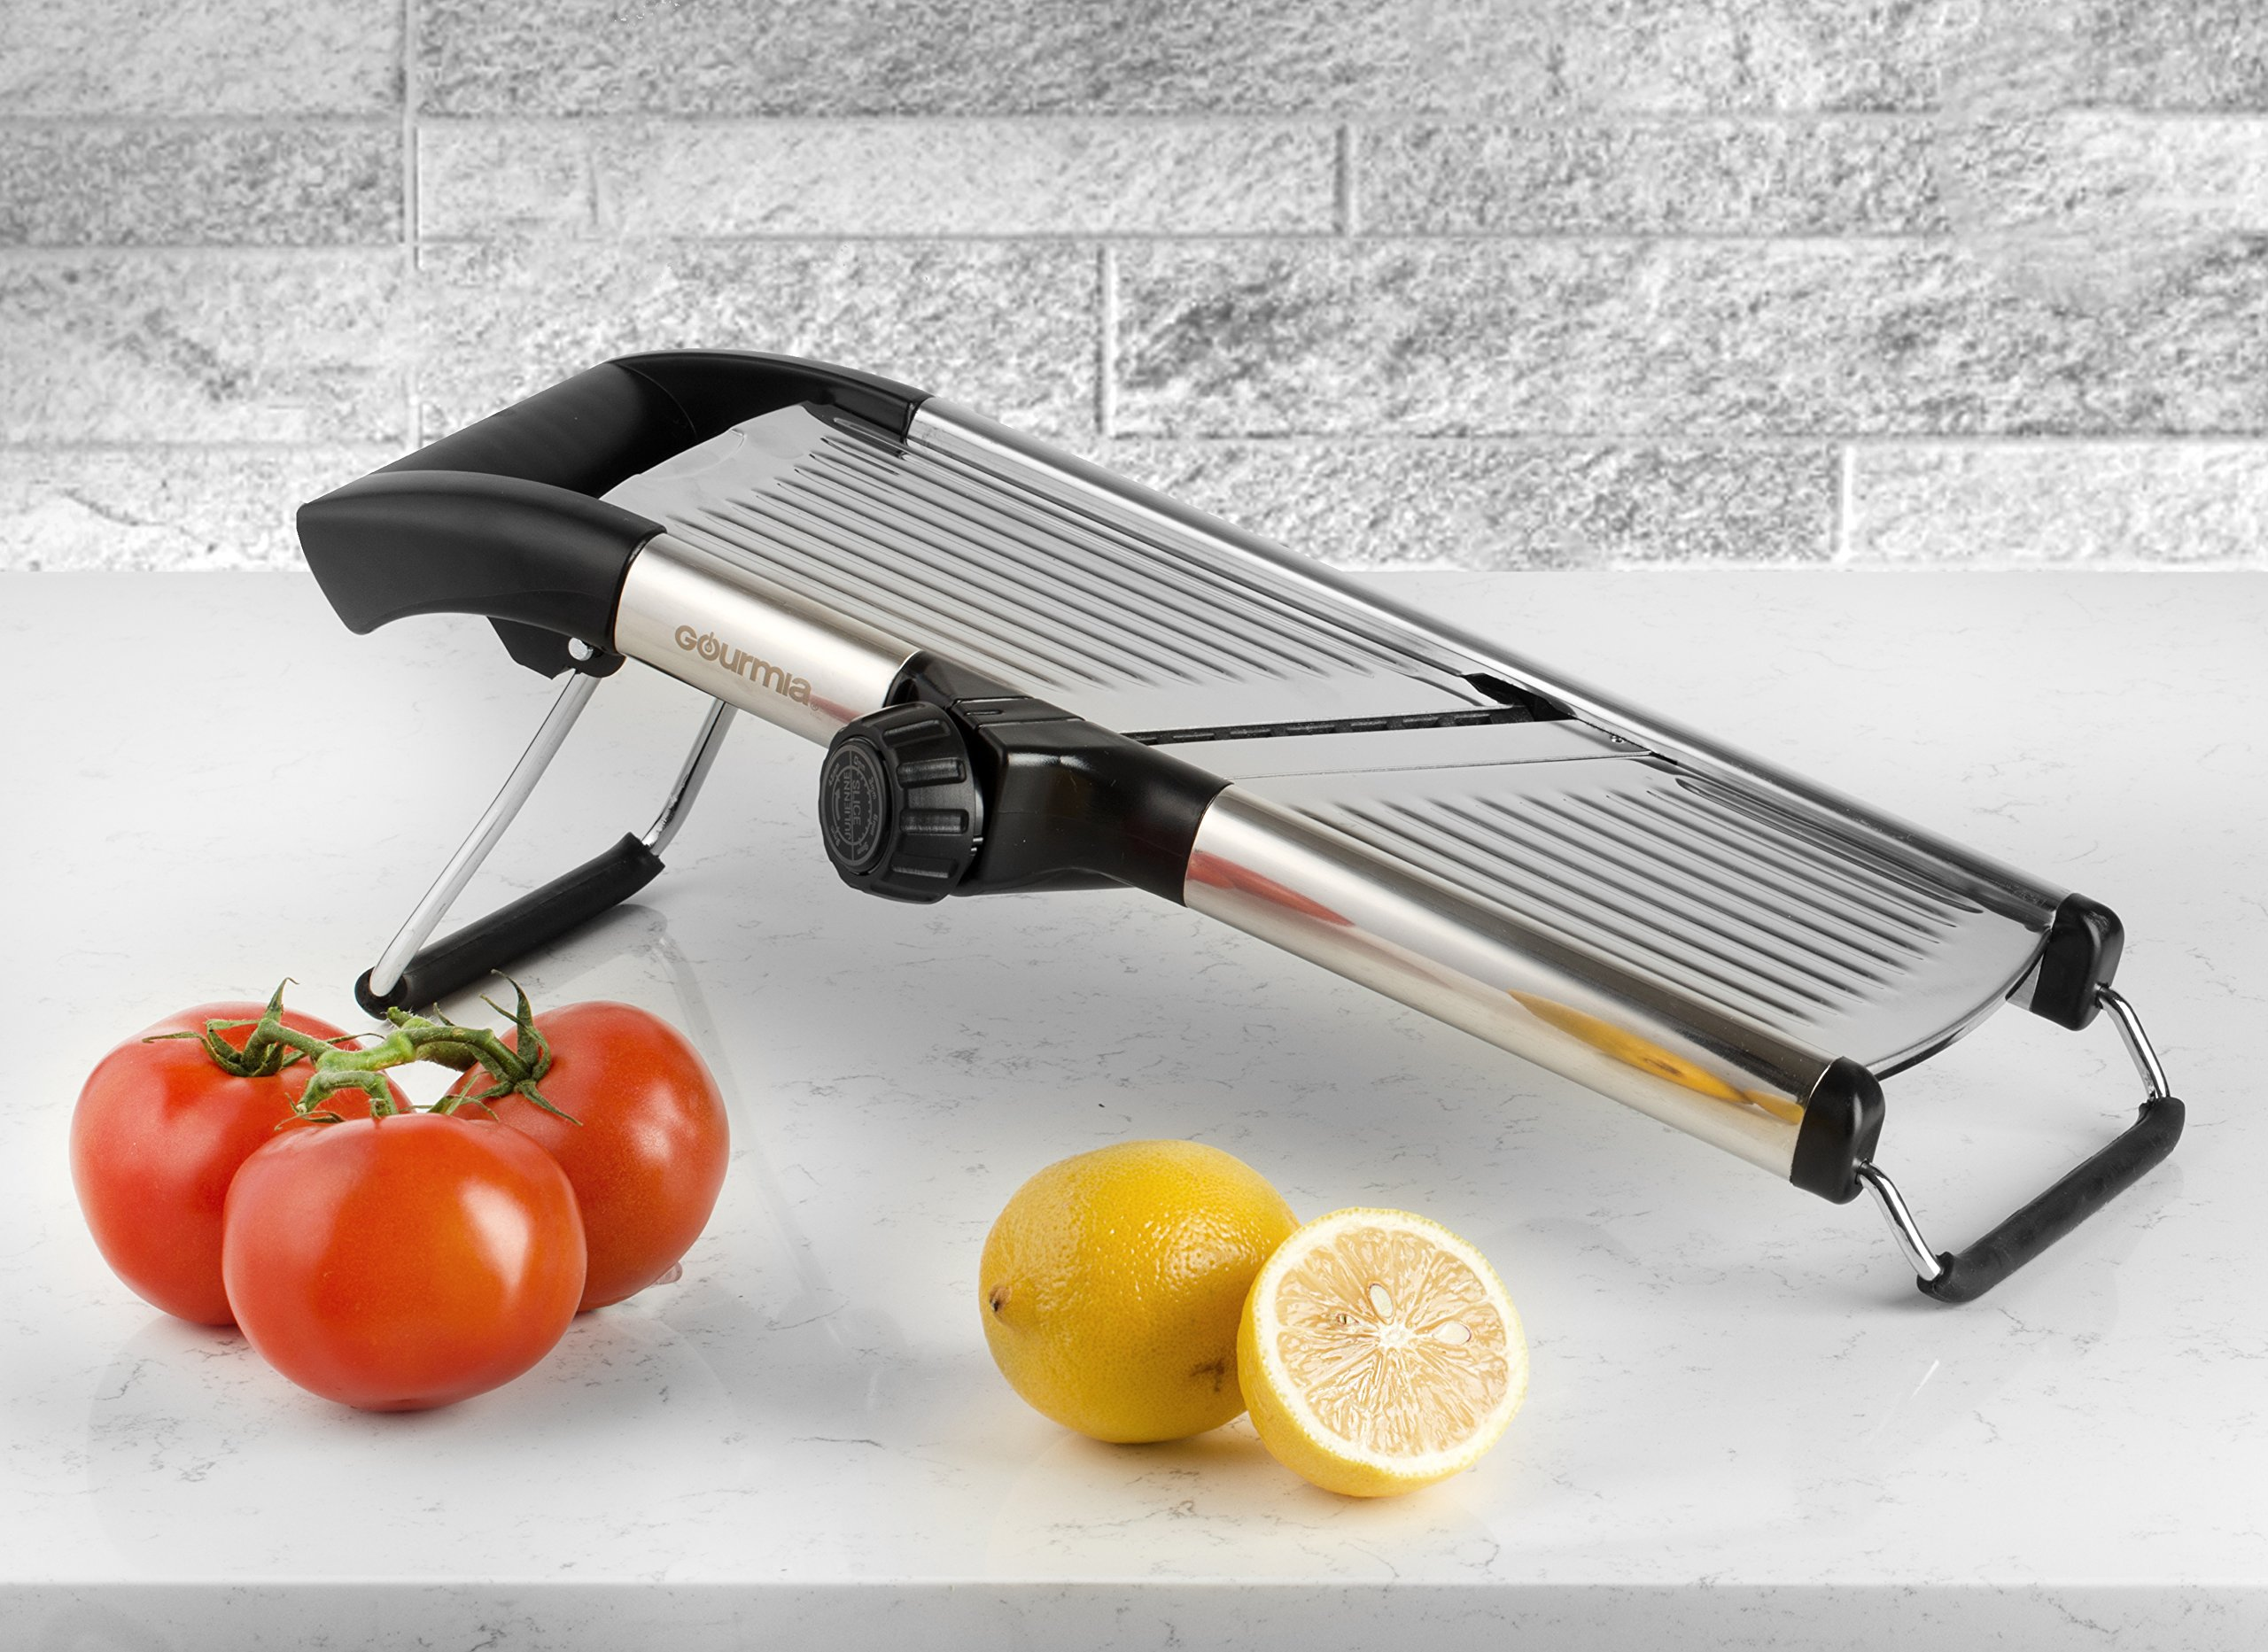 Gourmia GMS9105 Adjustable Stainless Steel Mandoline Slicer Dial-Style Kitchen Slicer With Built in Adjustable Blades Fine to Thick Slice & Julienne Settings by Gourmia (Image #6)